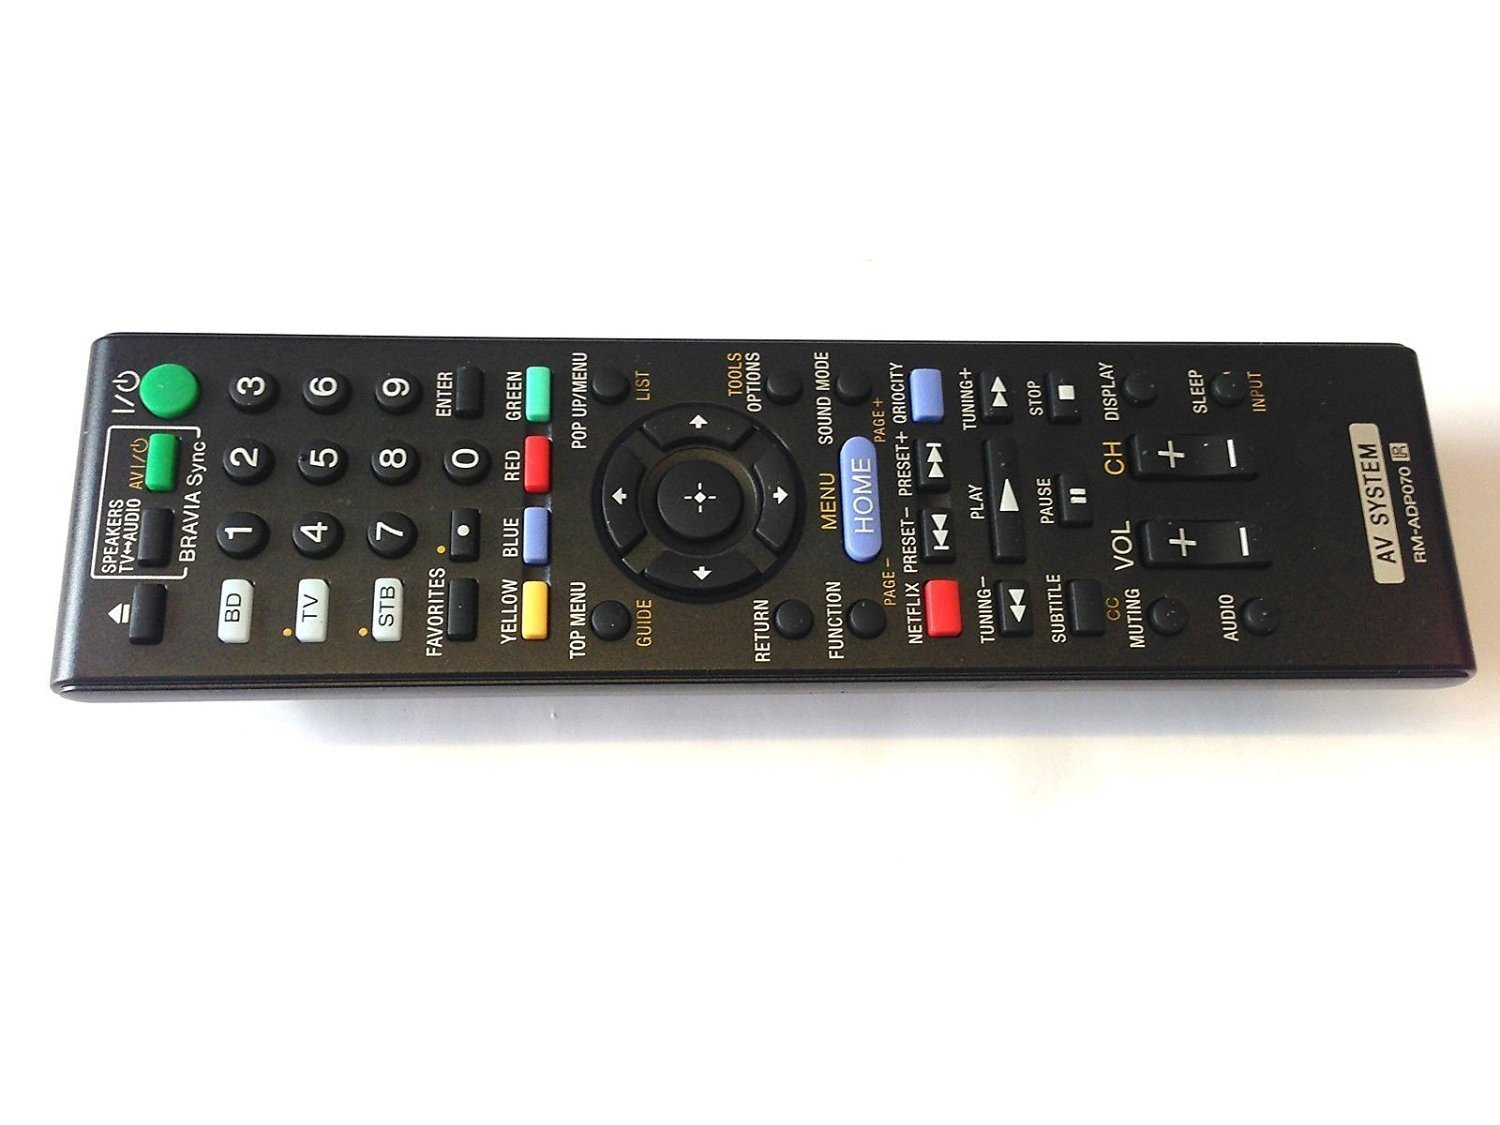 Neohomesales New OEM SONY Remote Control RM-ADP070 for Sony BDV-E780W HBD-E280 BDV-E980W HBD-E580 AV System